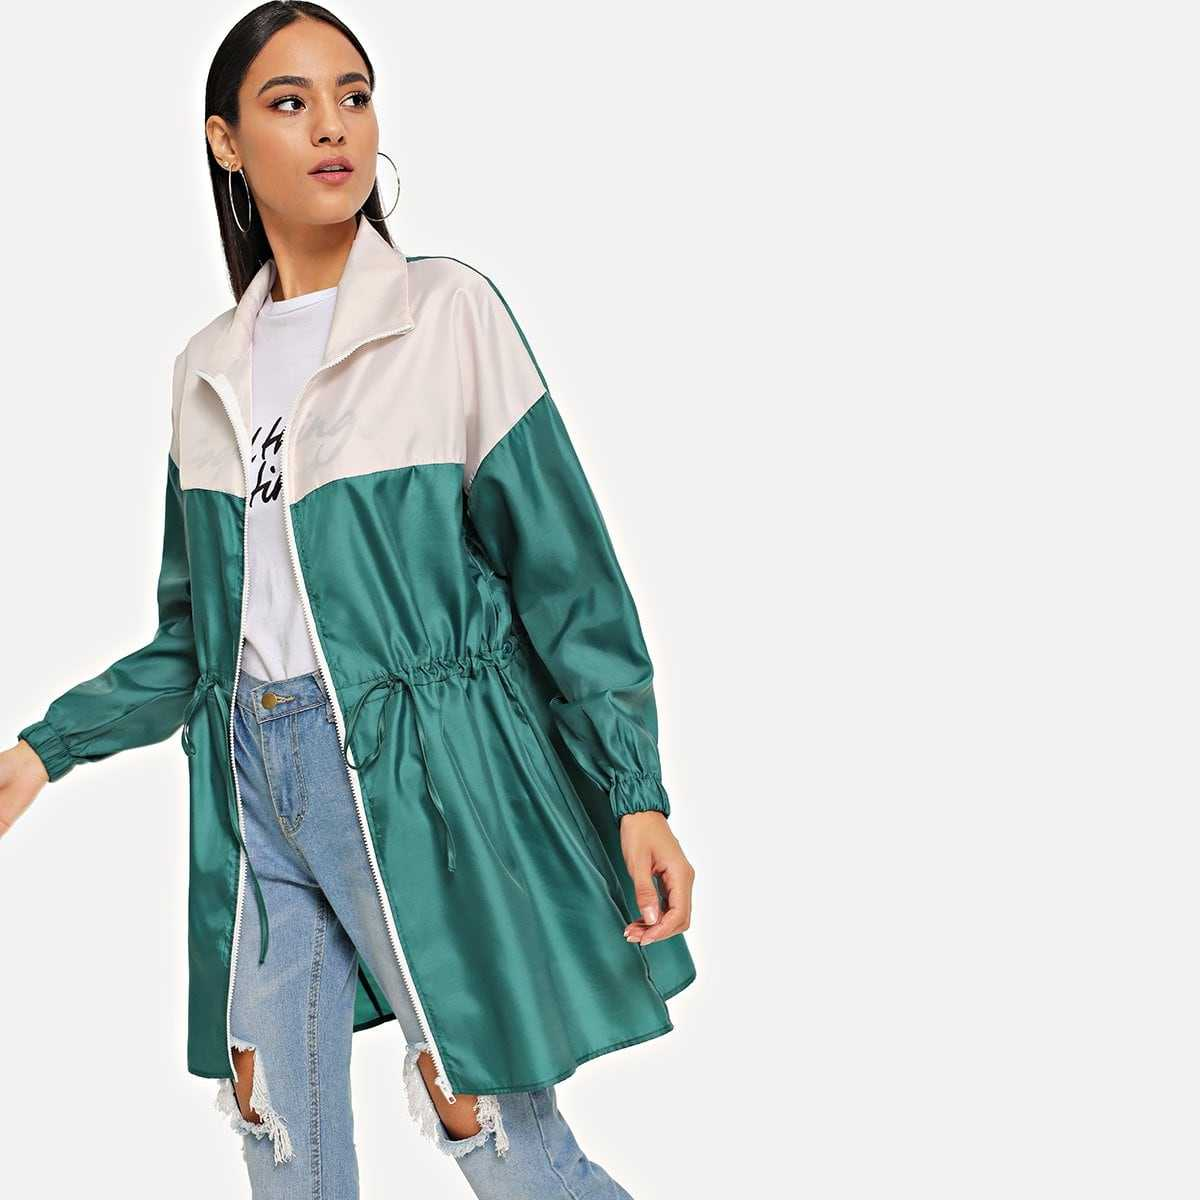 Zipper Up Drawstring Color Block Rain Coat in Multicolor by ROMWE on GOOFASH